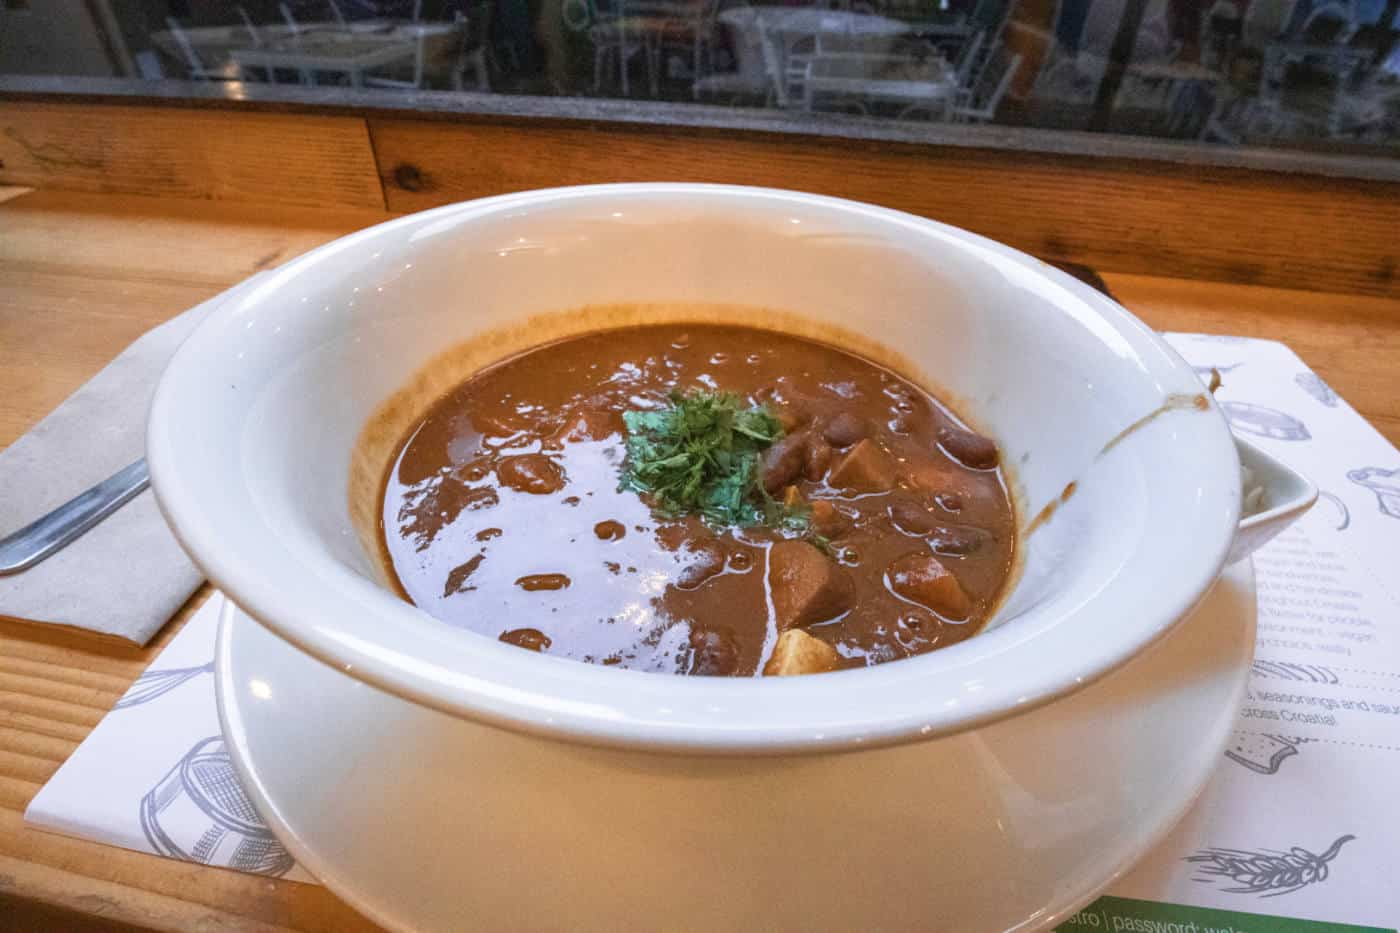 Kidney bean stew at organic vegan restaurant zrno bio bistro in Zagreb Croatia